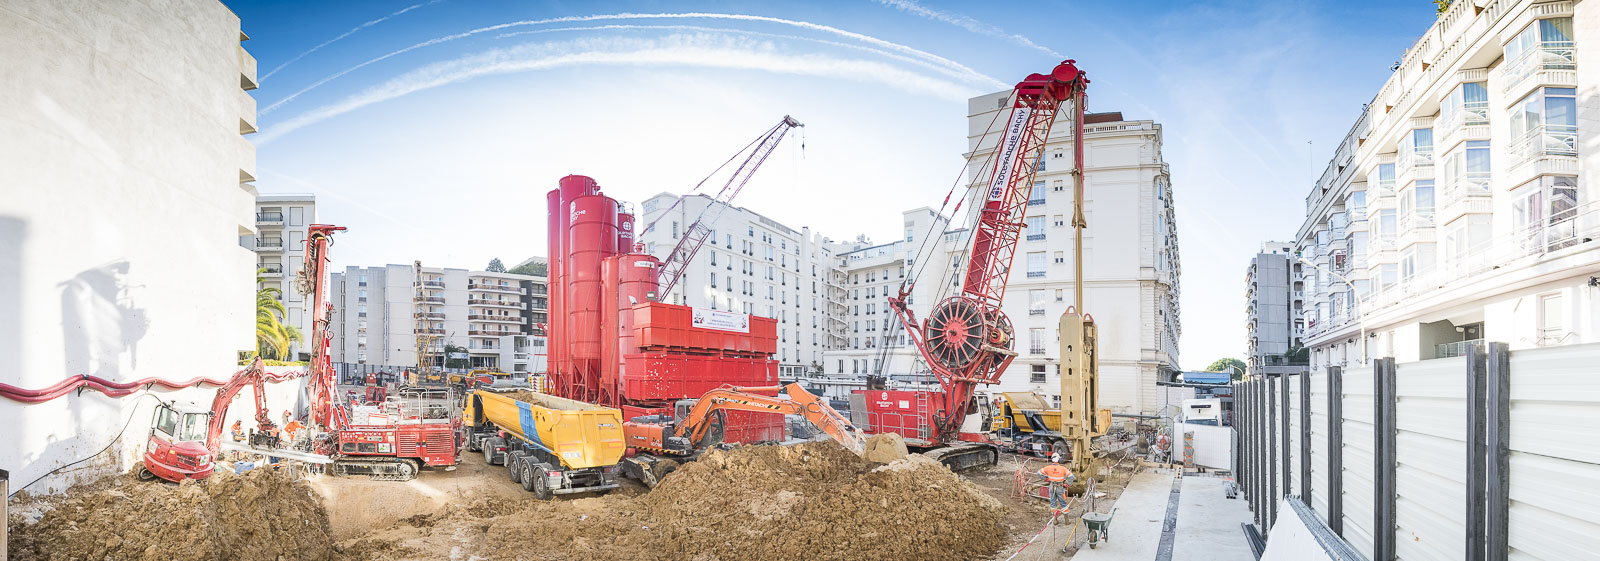 Photographe chantier btp construction